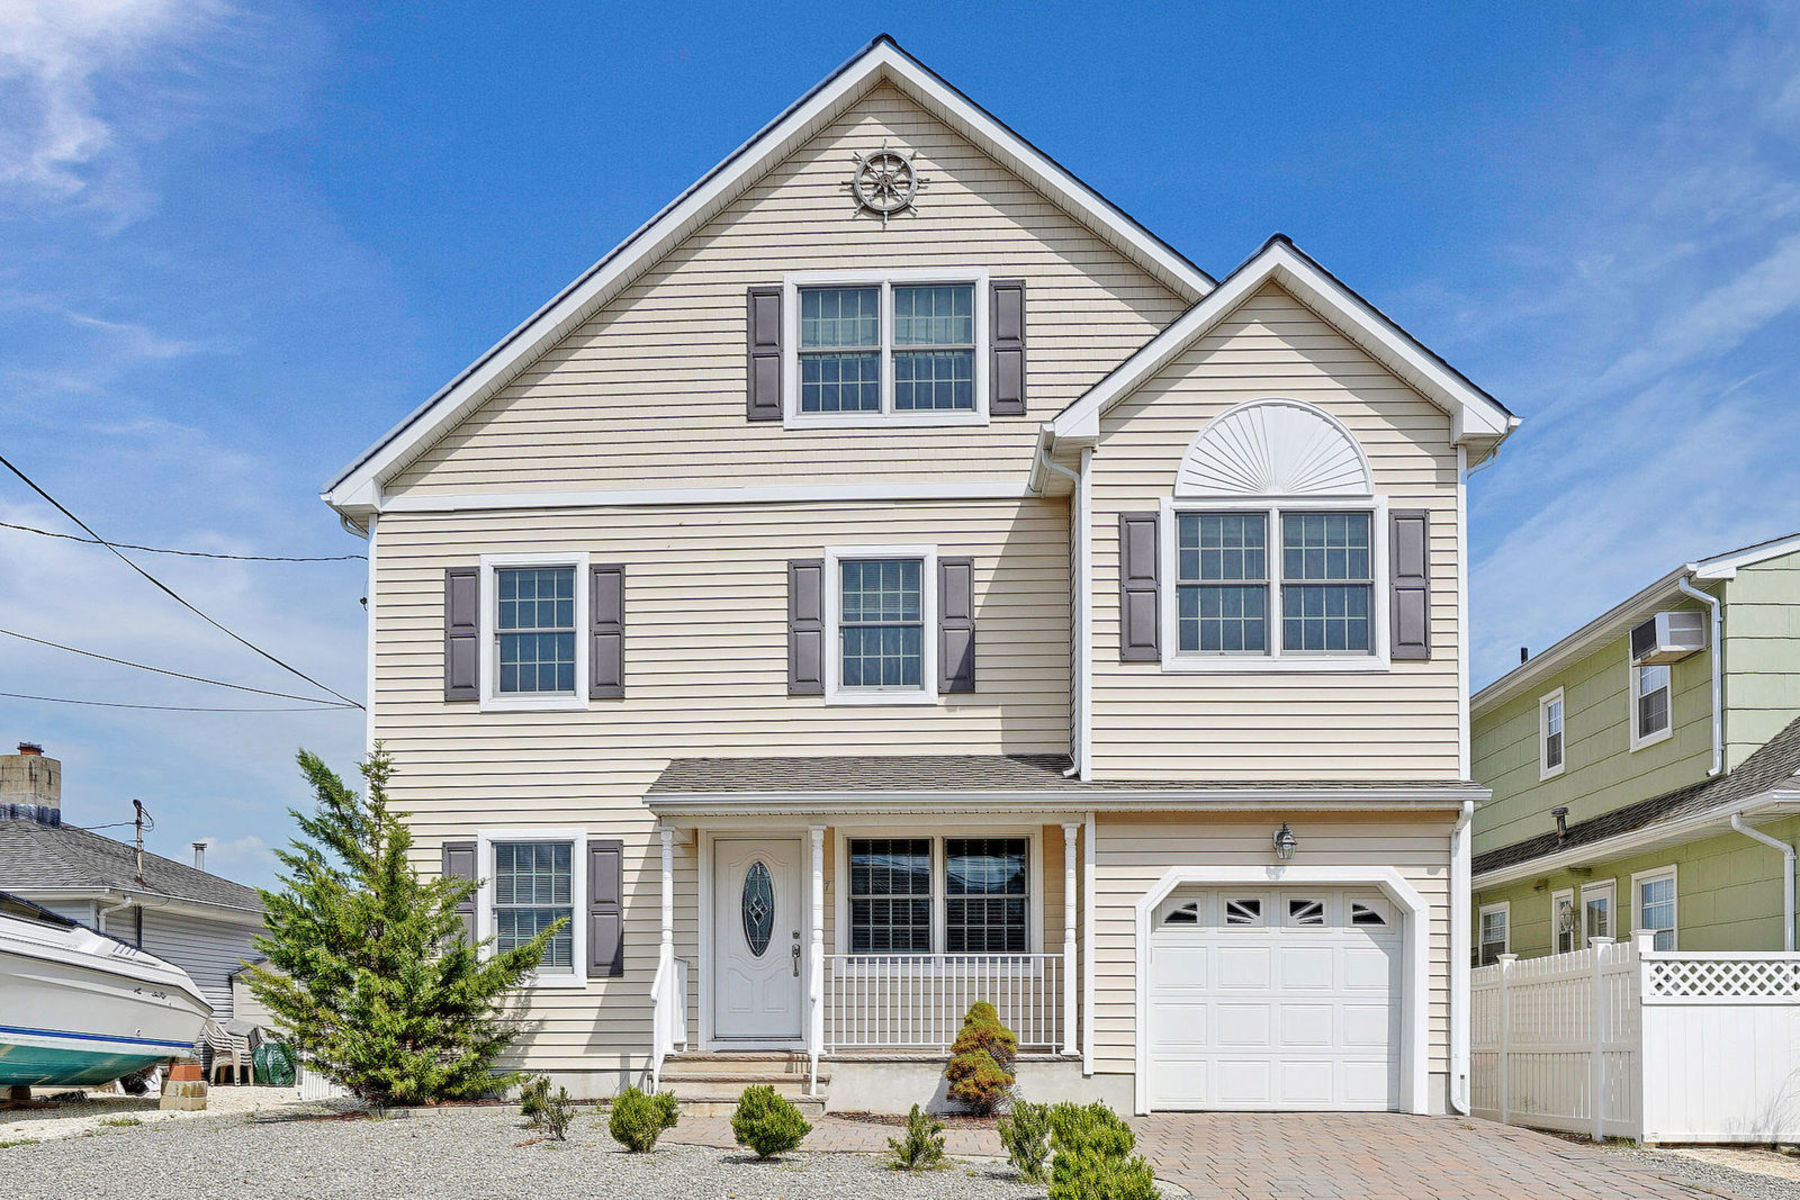 Single Family Home for Sale at Water Front Living 17 Crane Way, Toms River, New Jersey 08753 United States